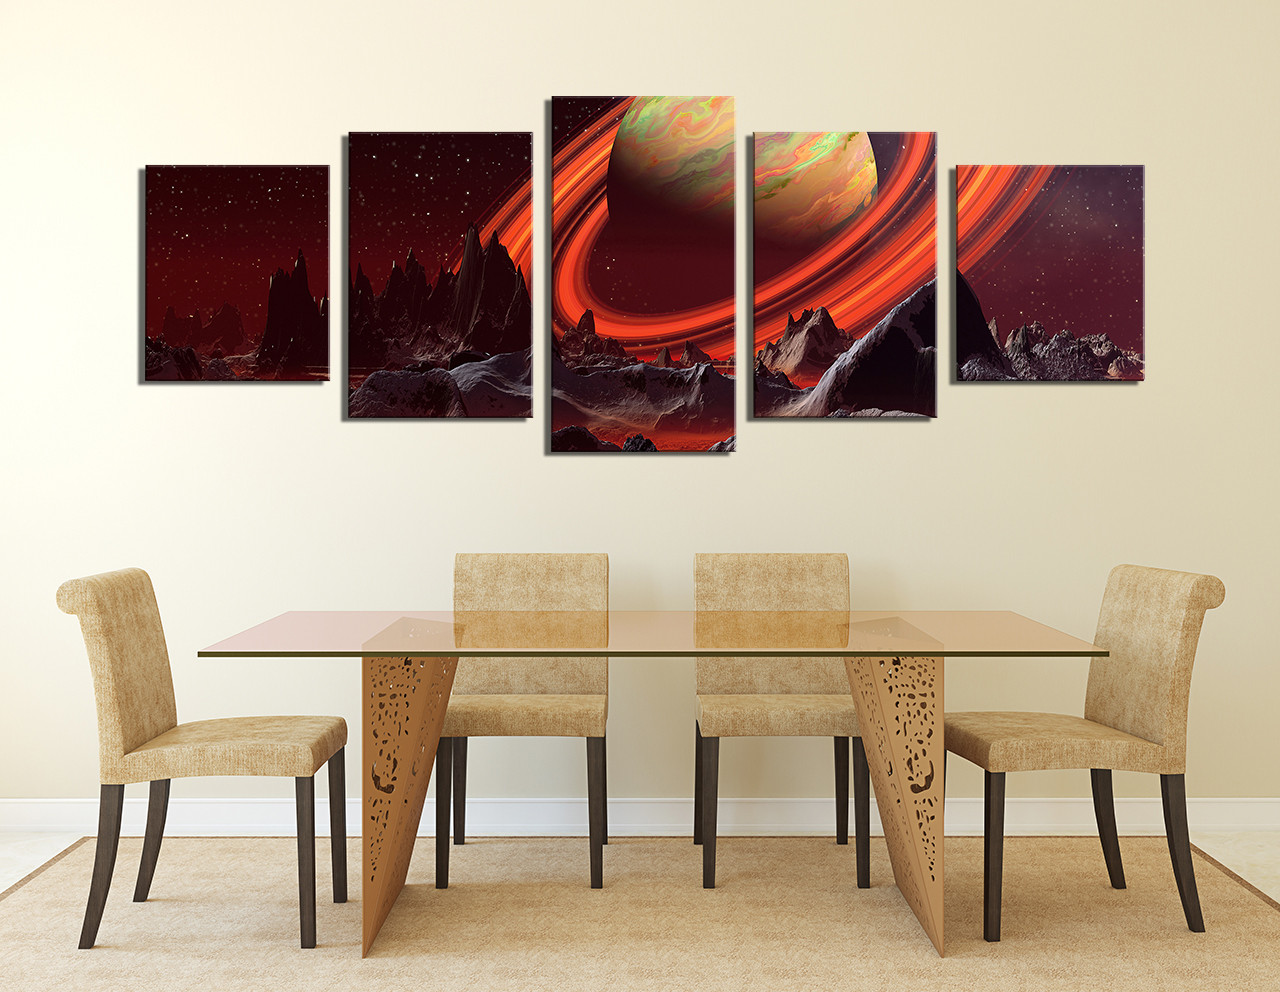 5 Piece Artwork, Dining Room Canvas Wall Art, Landscape Large Canvas,  Orange Huge